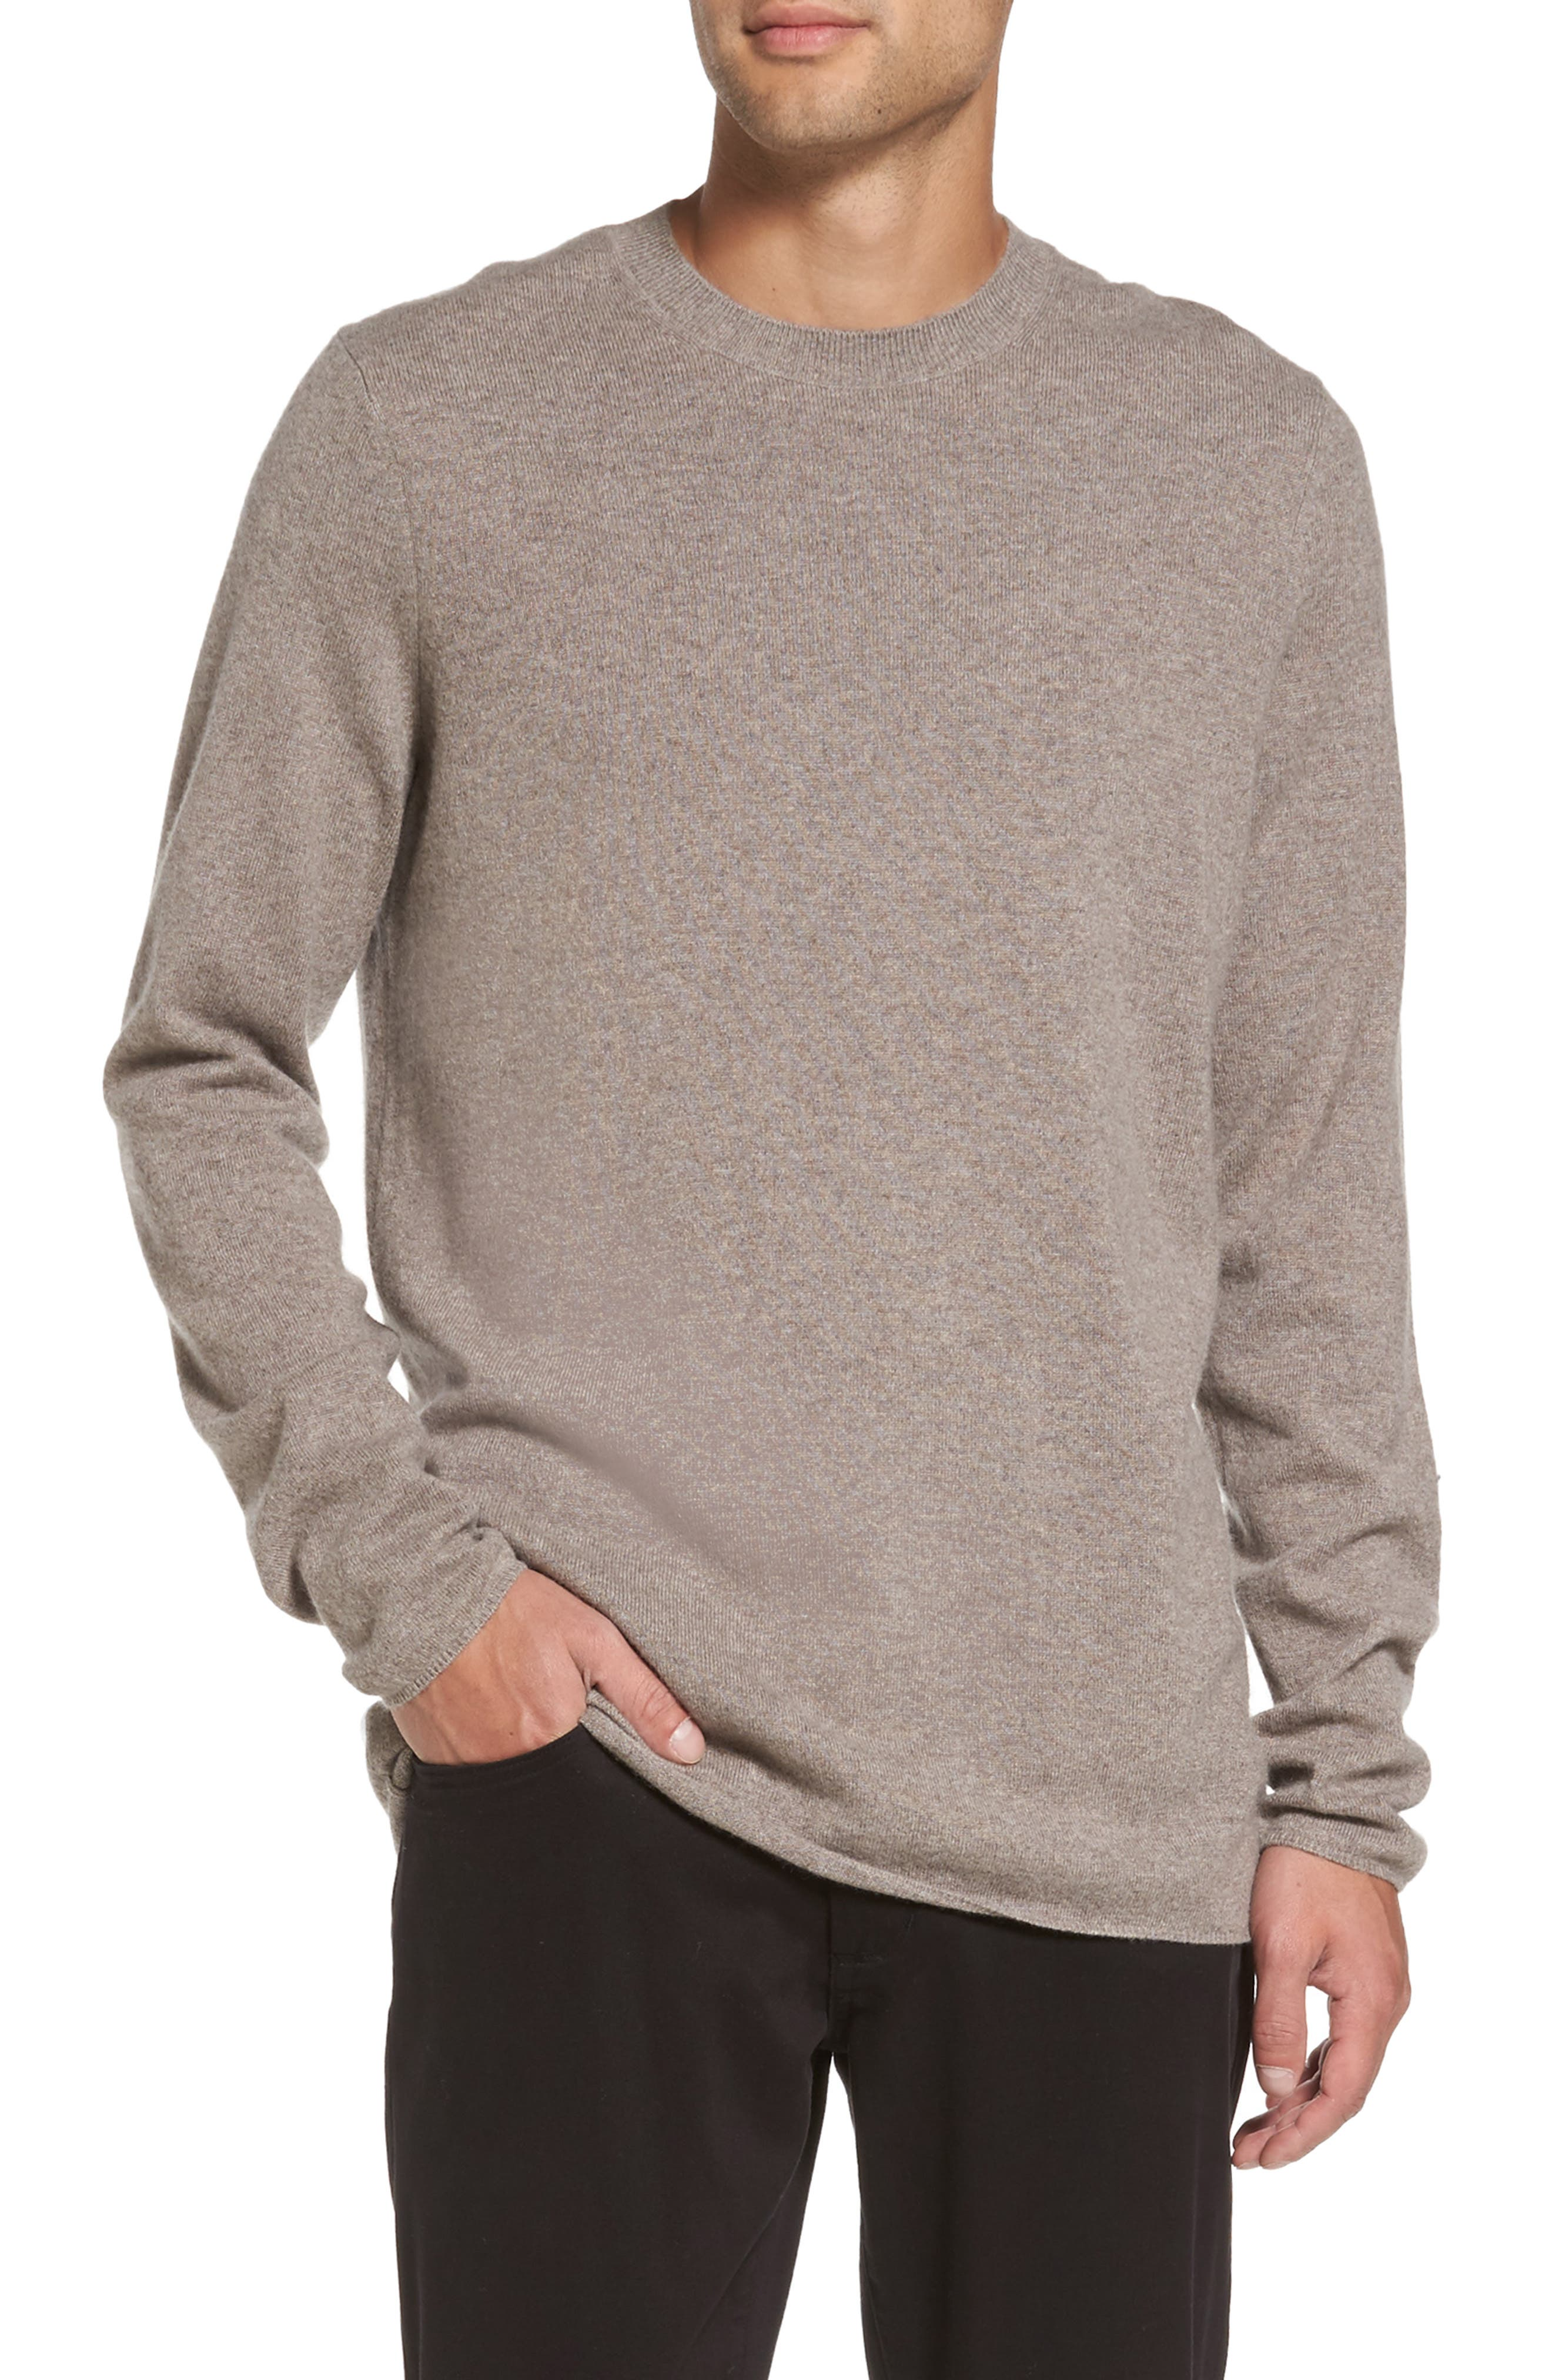 Regular Fit Crewneck Sweater,                         Main,                         color, 281